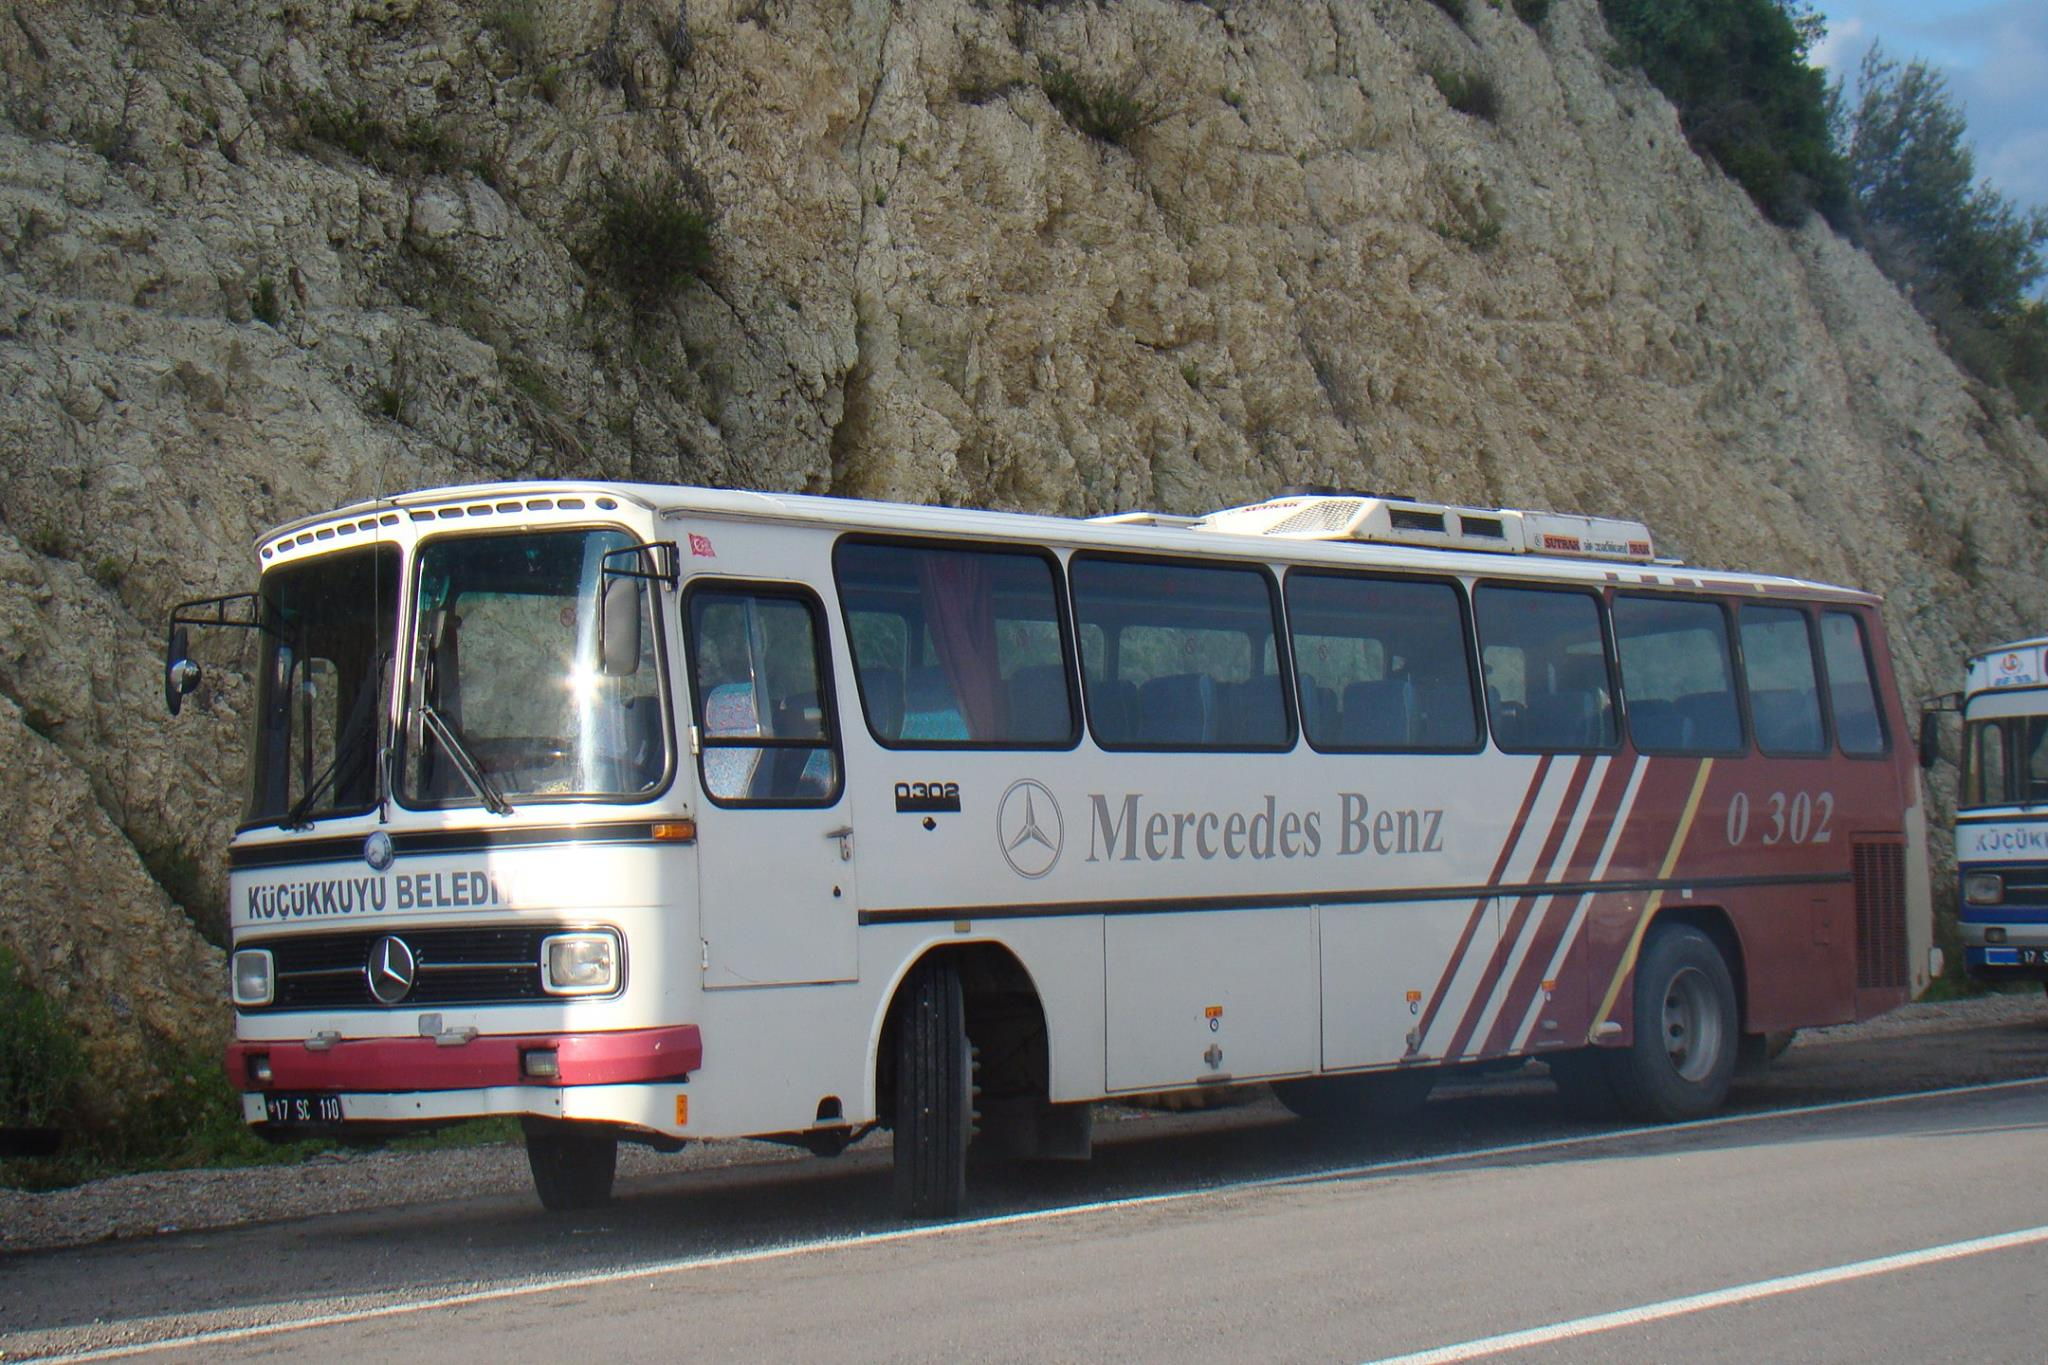 Mercedes-0-302--Efsane[1]